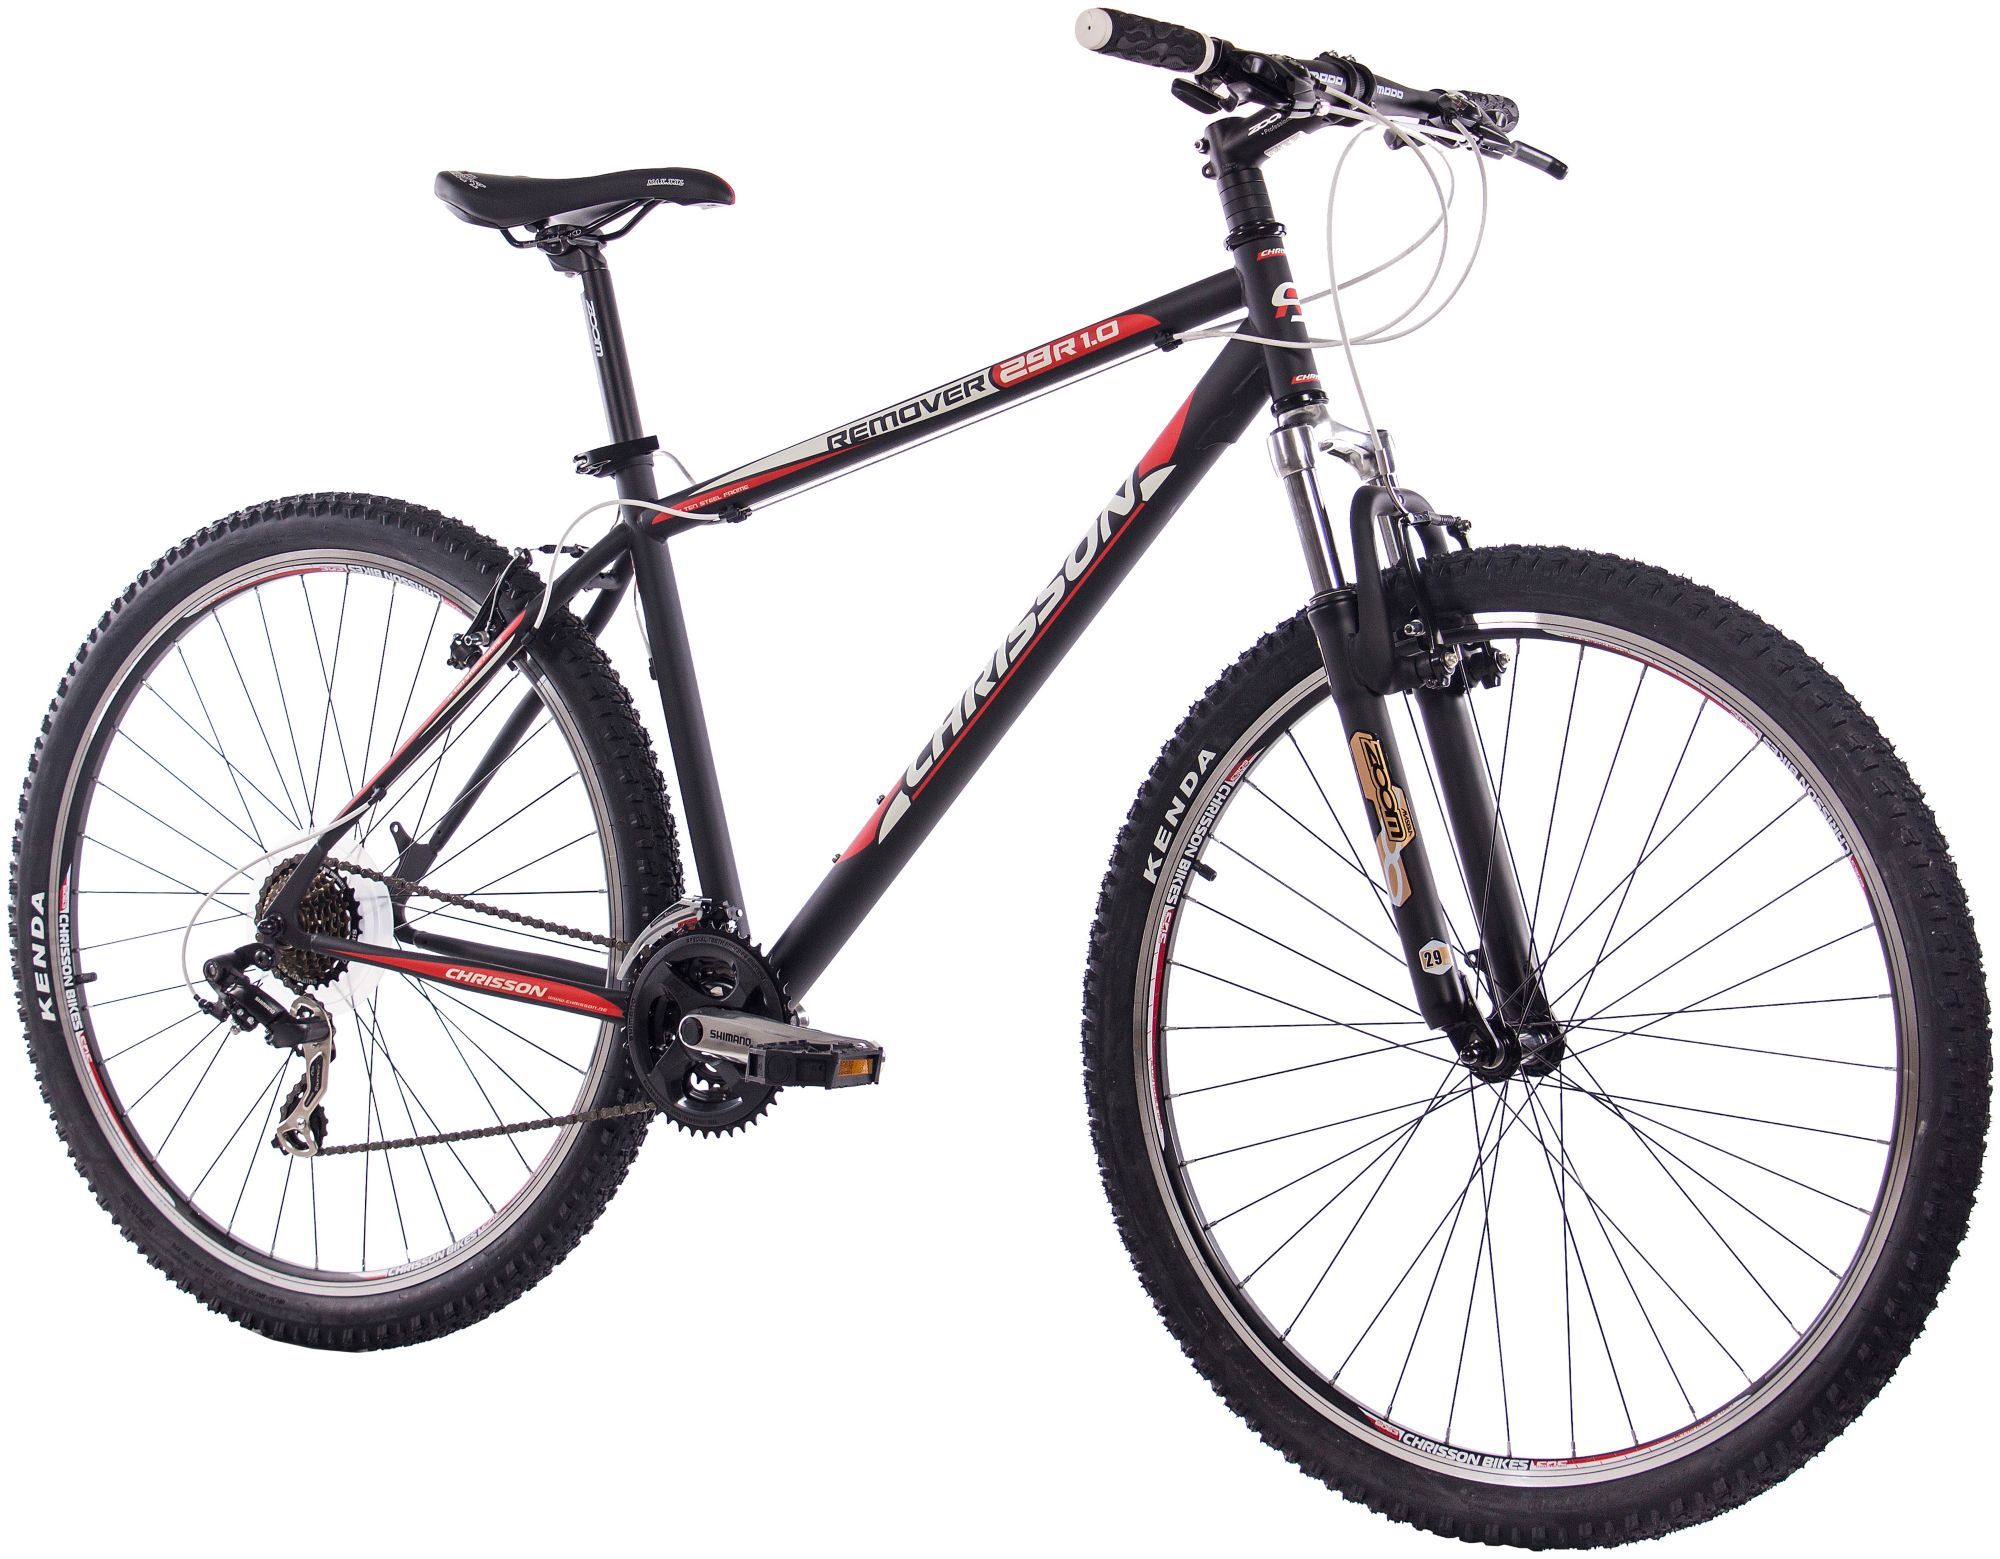 CHRISSON  Mountainbike »REMOVER«, 29 Zoll, 21 Gang, V-Brakes